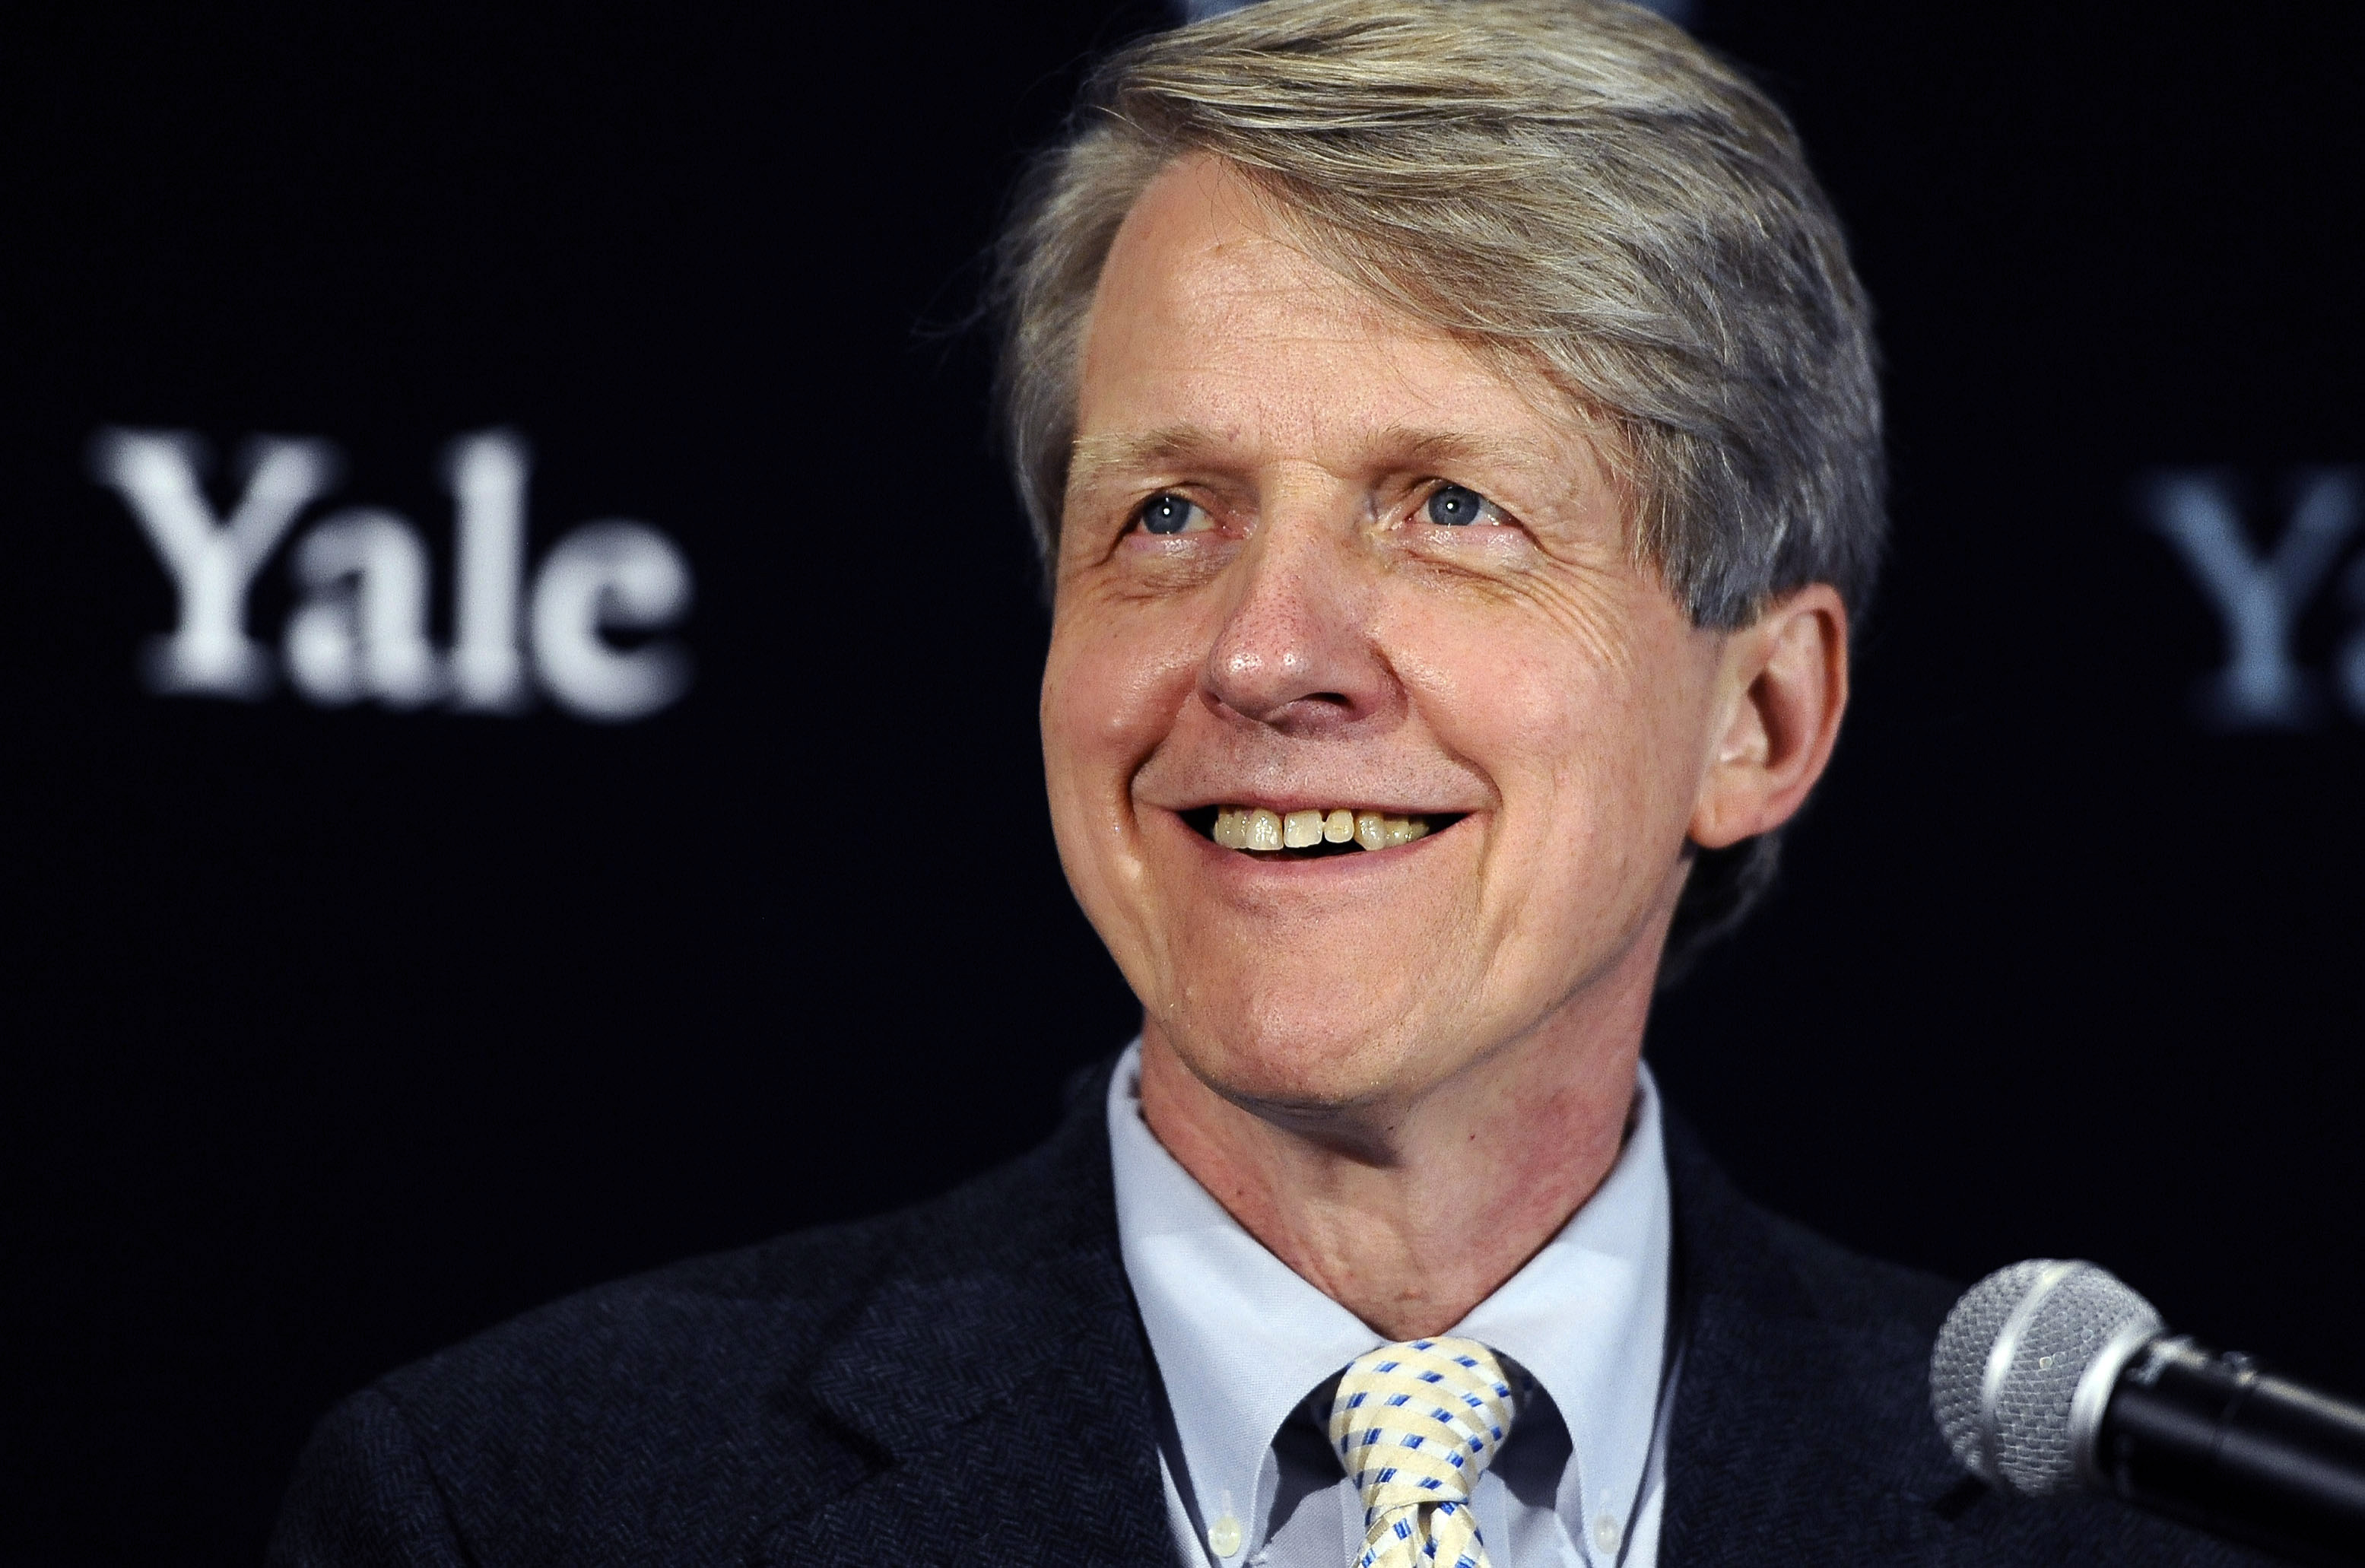 Robert Shiller examines if markets can continue delivering record highs